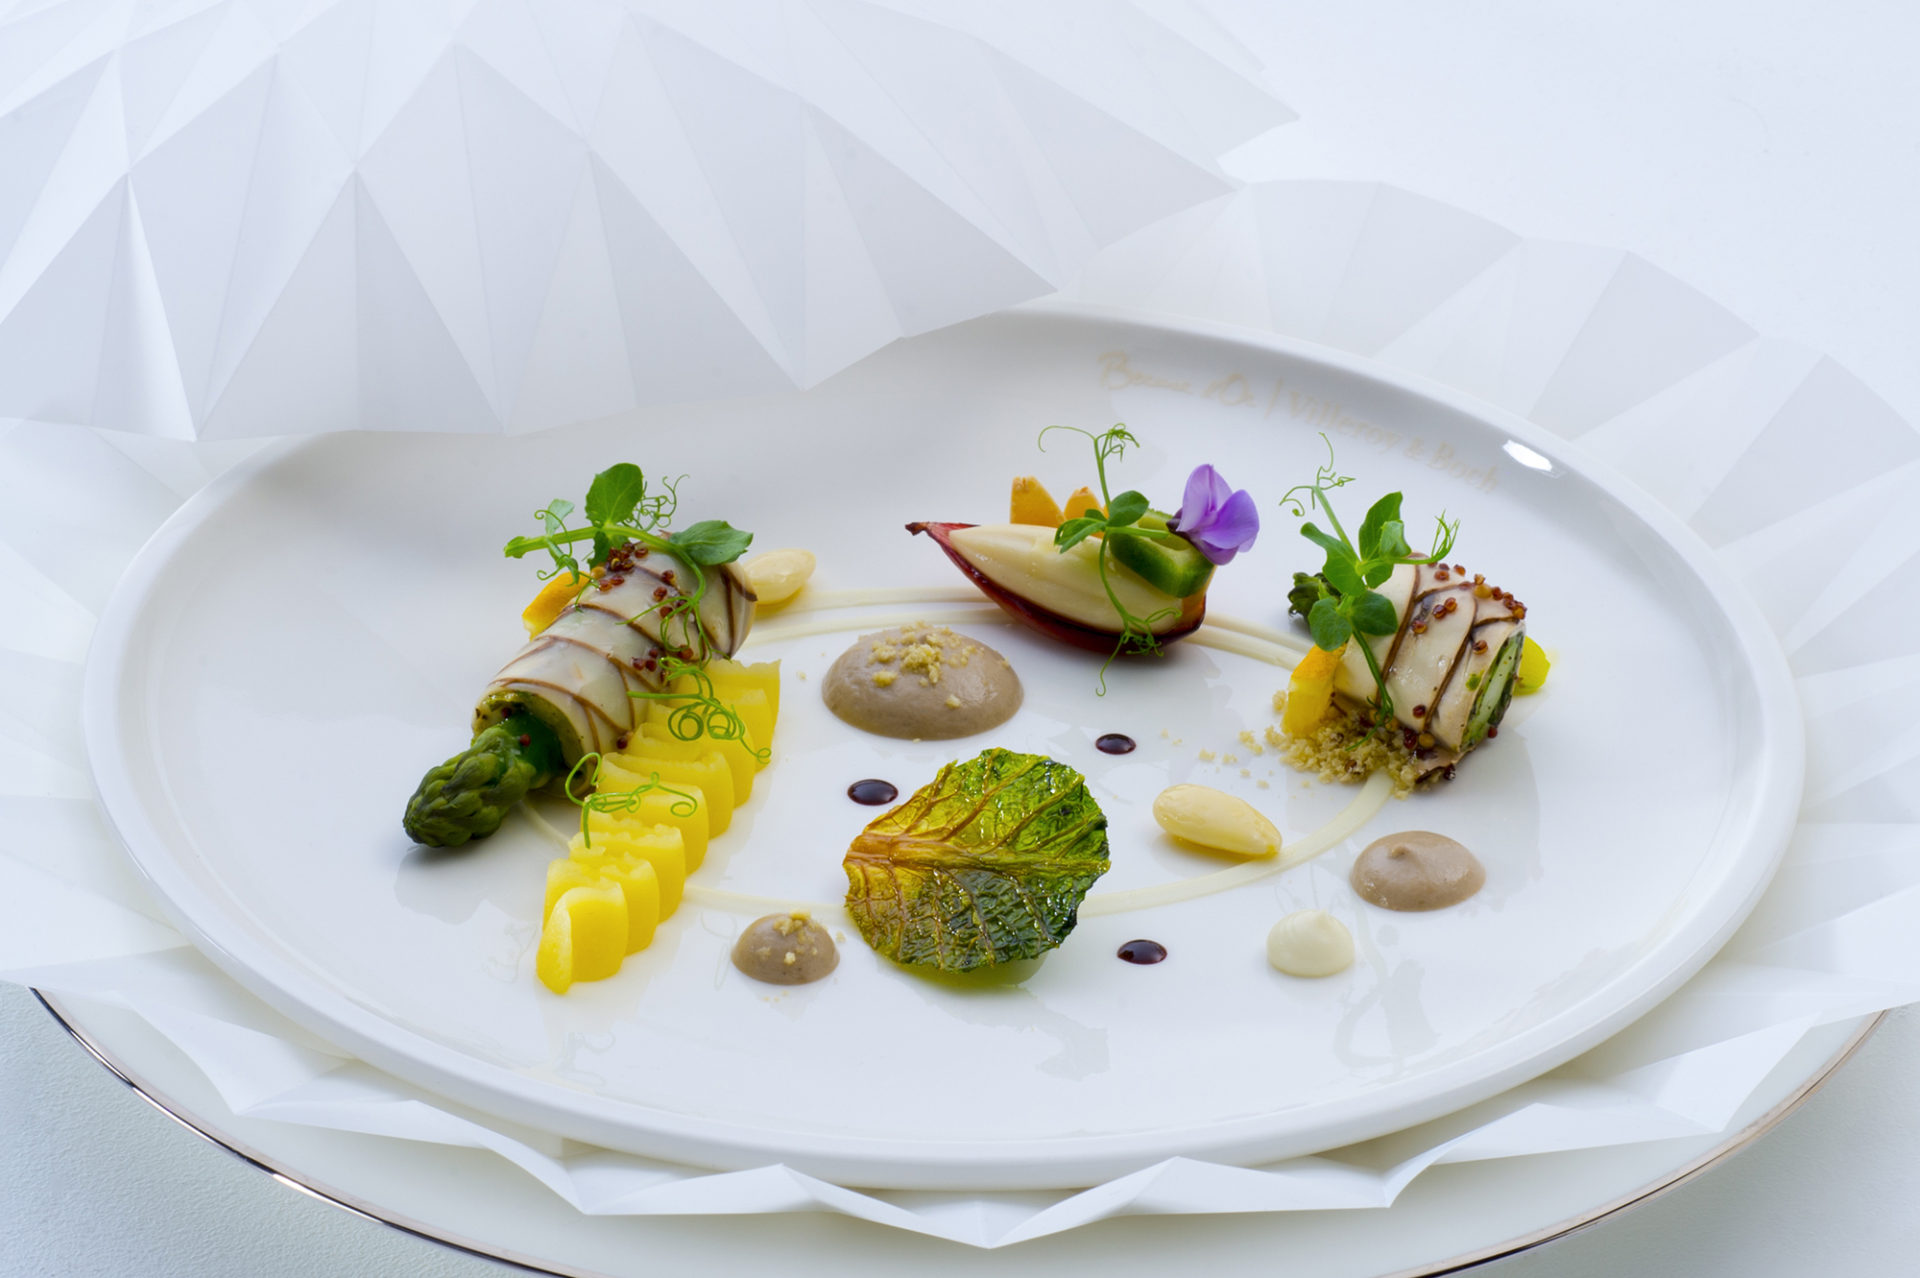 Chefs from the US won the Bocuse d'Or in 2017. Theme on a vegetal plate. Copyright: Le Fotographe. Courtesy of AB3C.